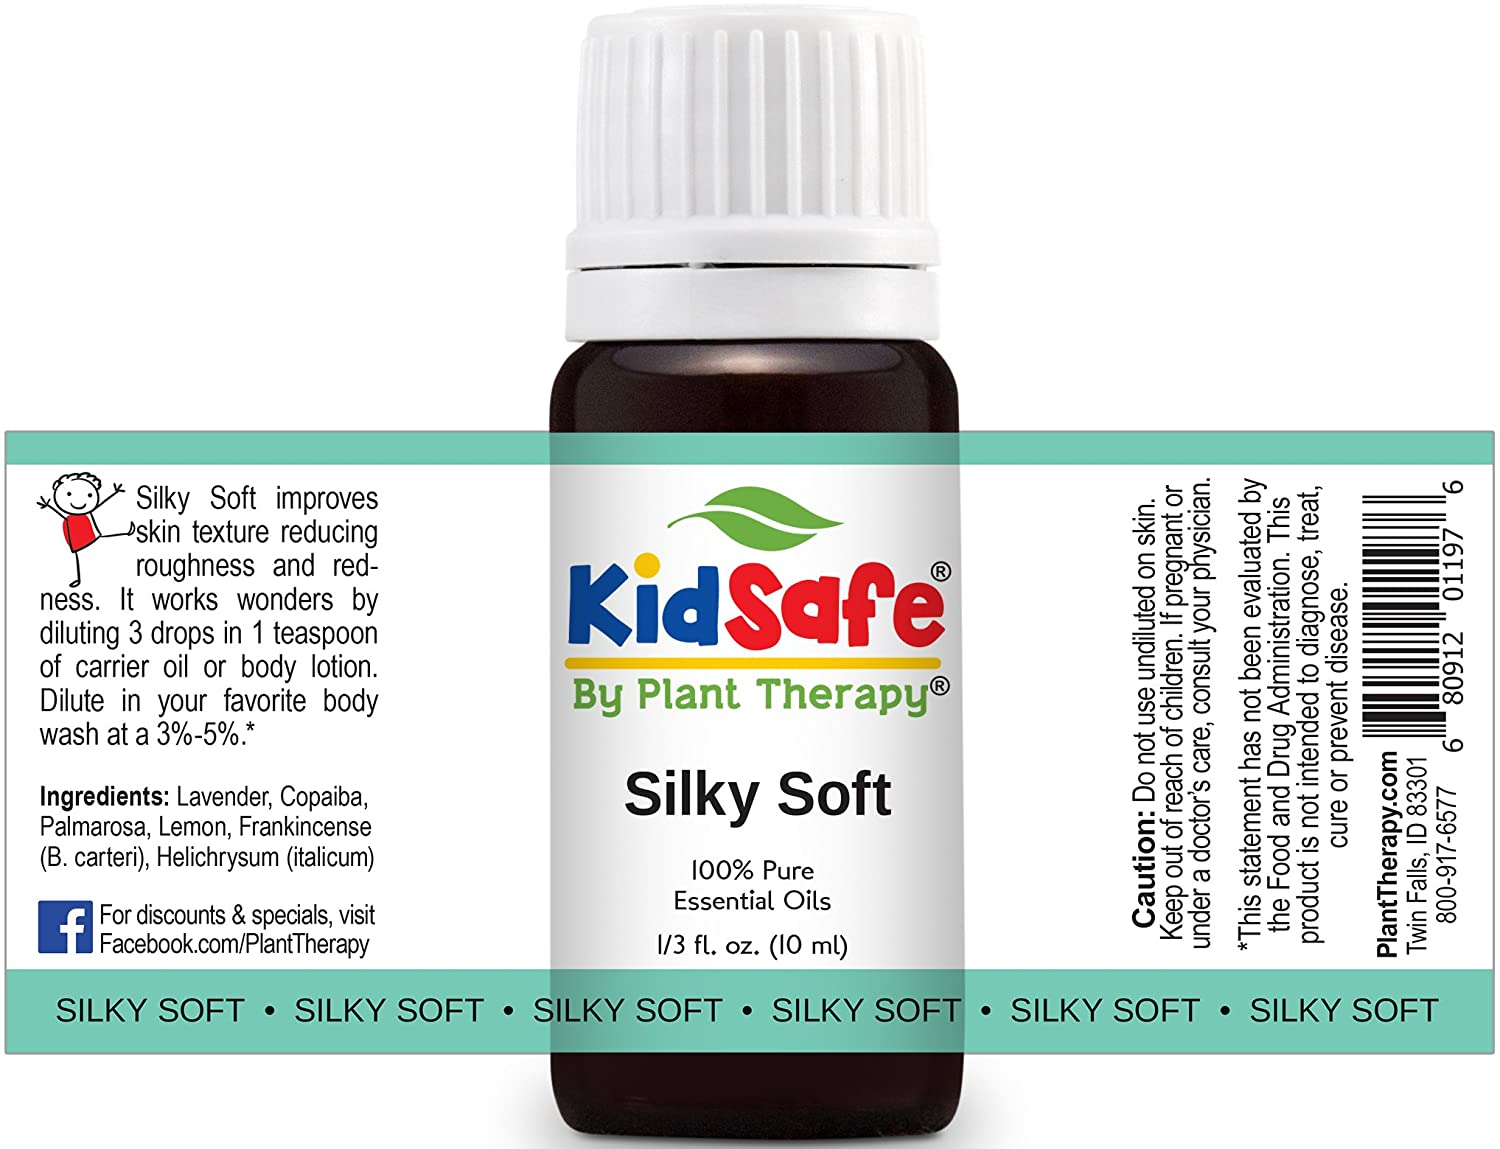 Plant Therapy KidSafe Silky Soft Synergy Essential Oil 30 mL (1 oz) 100% Pure, Undiluted, Therapeutic Grade